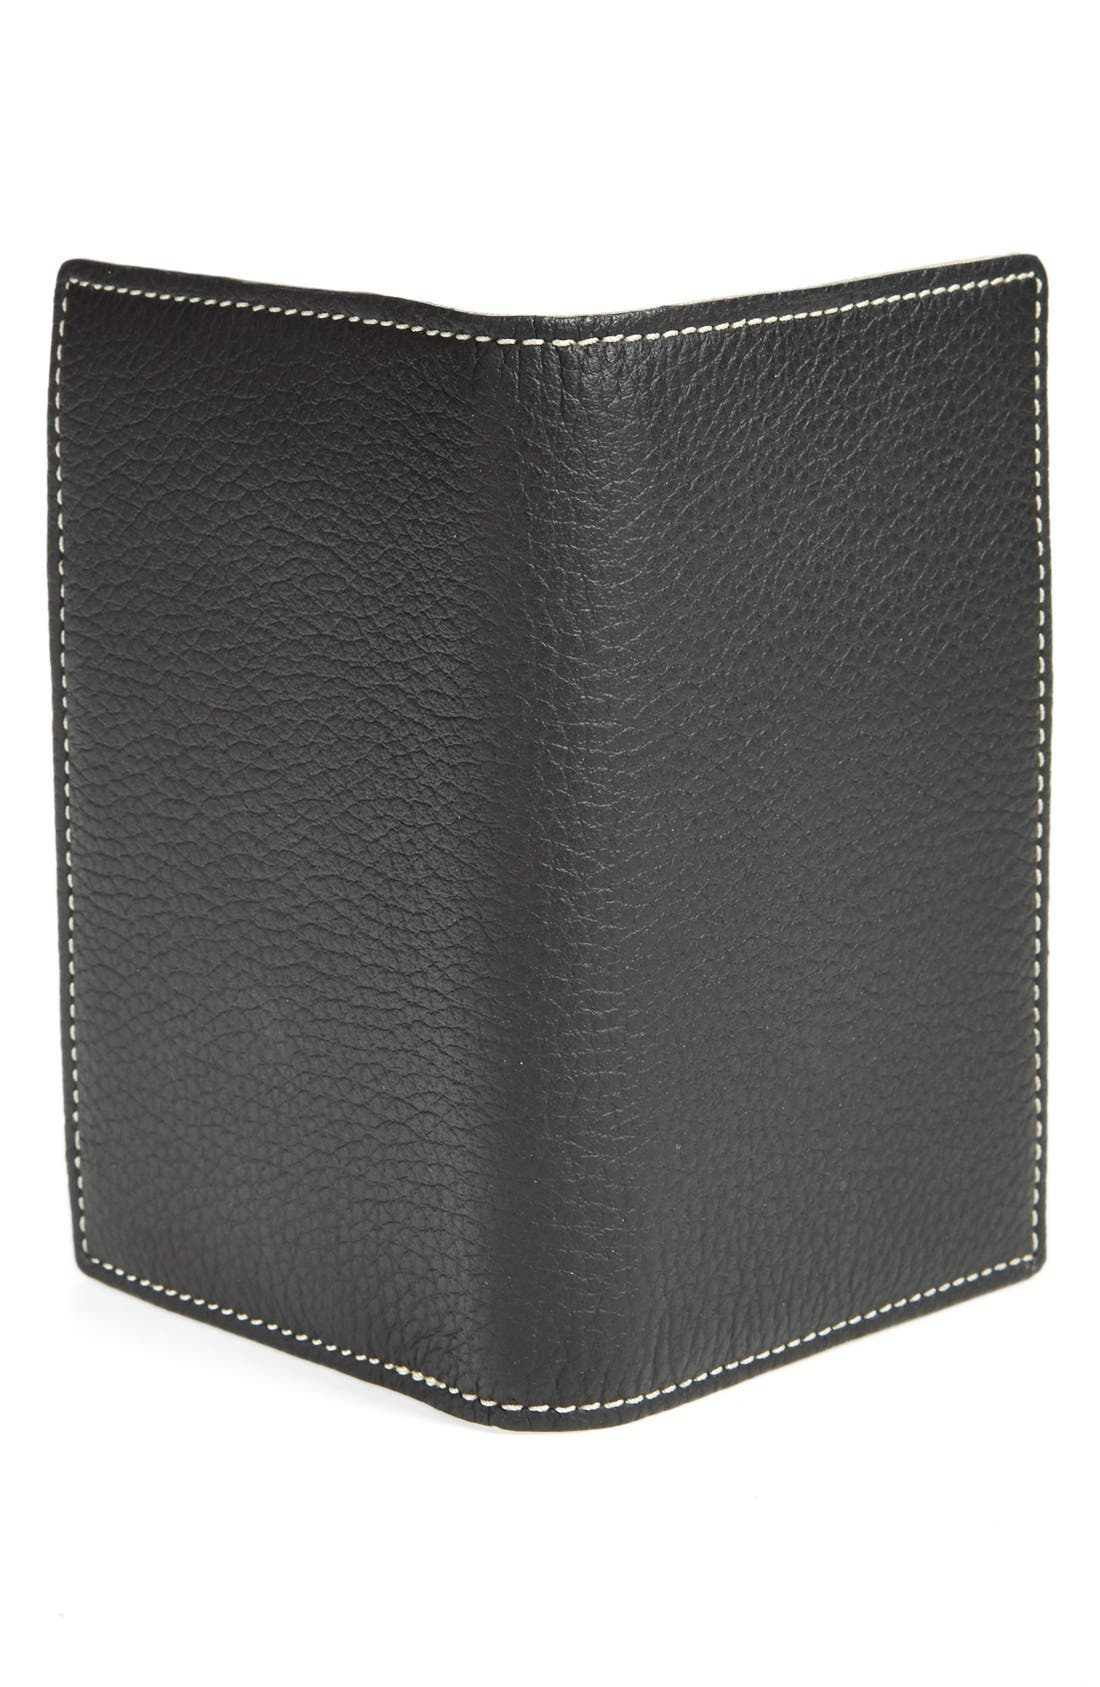 'Jackson' Norwegian Elk Leather Passport Holder,                             Alternate thumbnail 2, color,                             Black Norwegian Elk